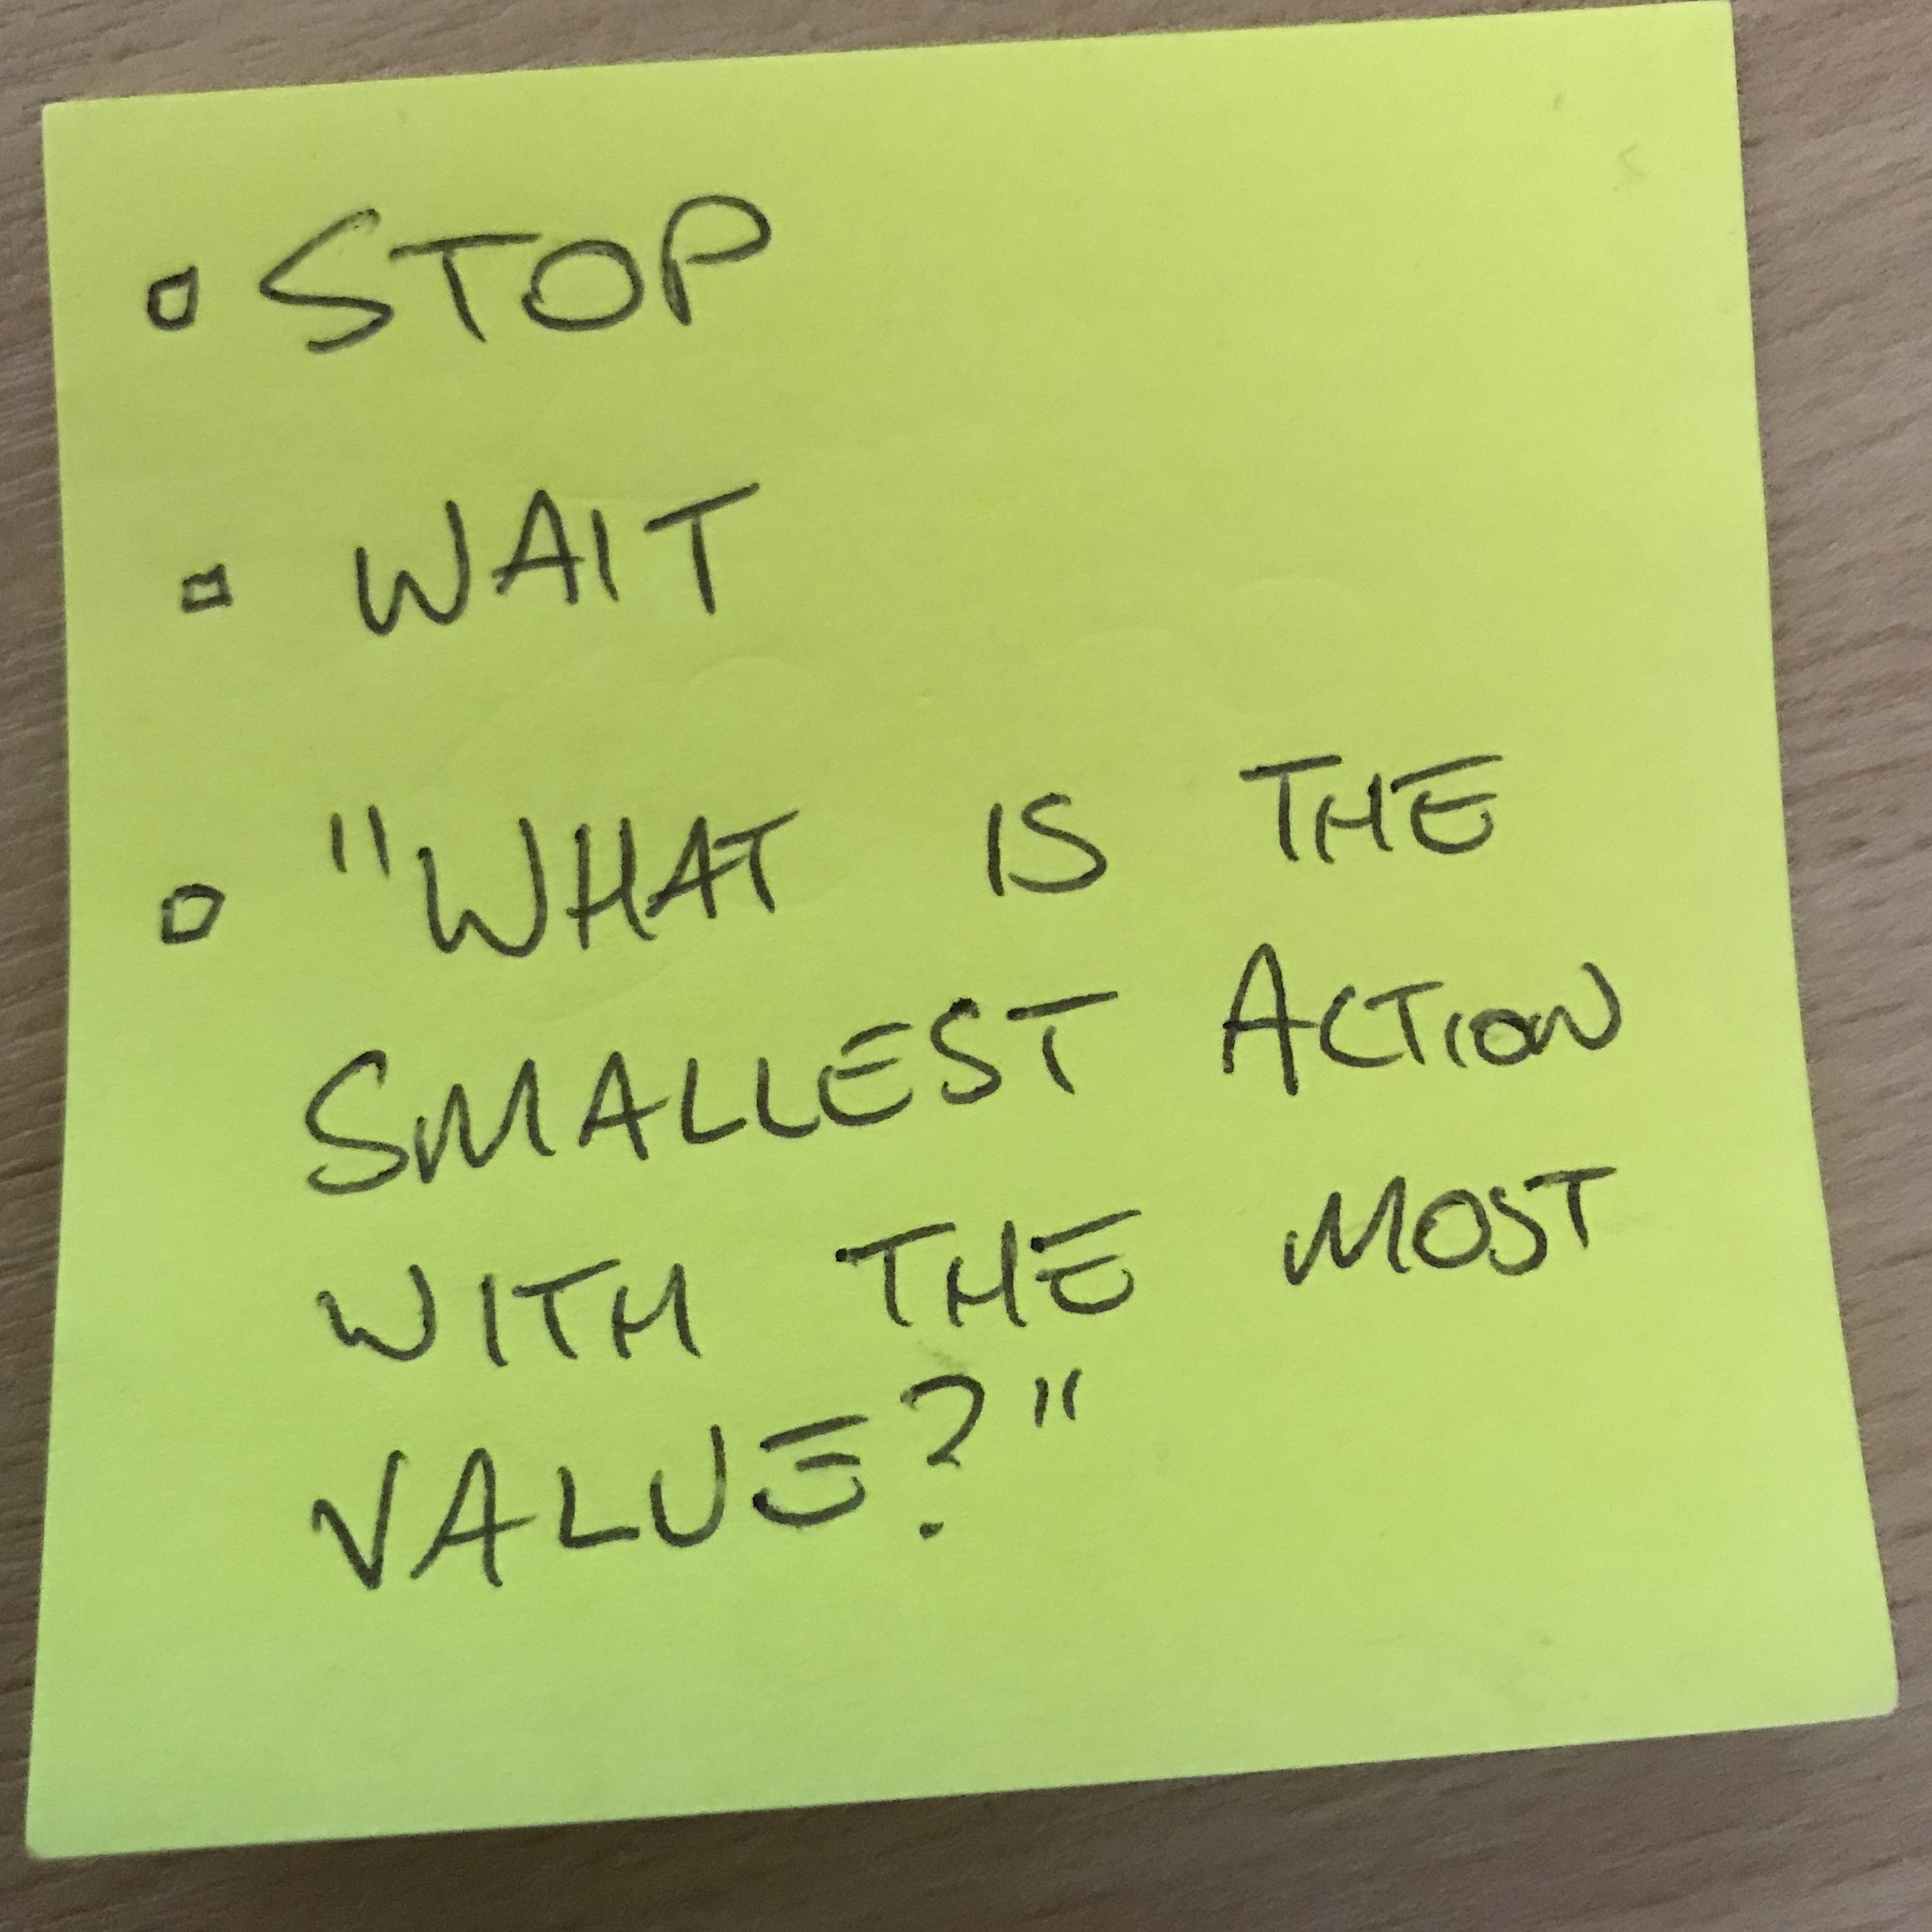 Post-it note with a question